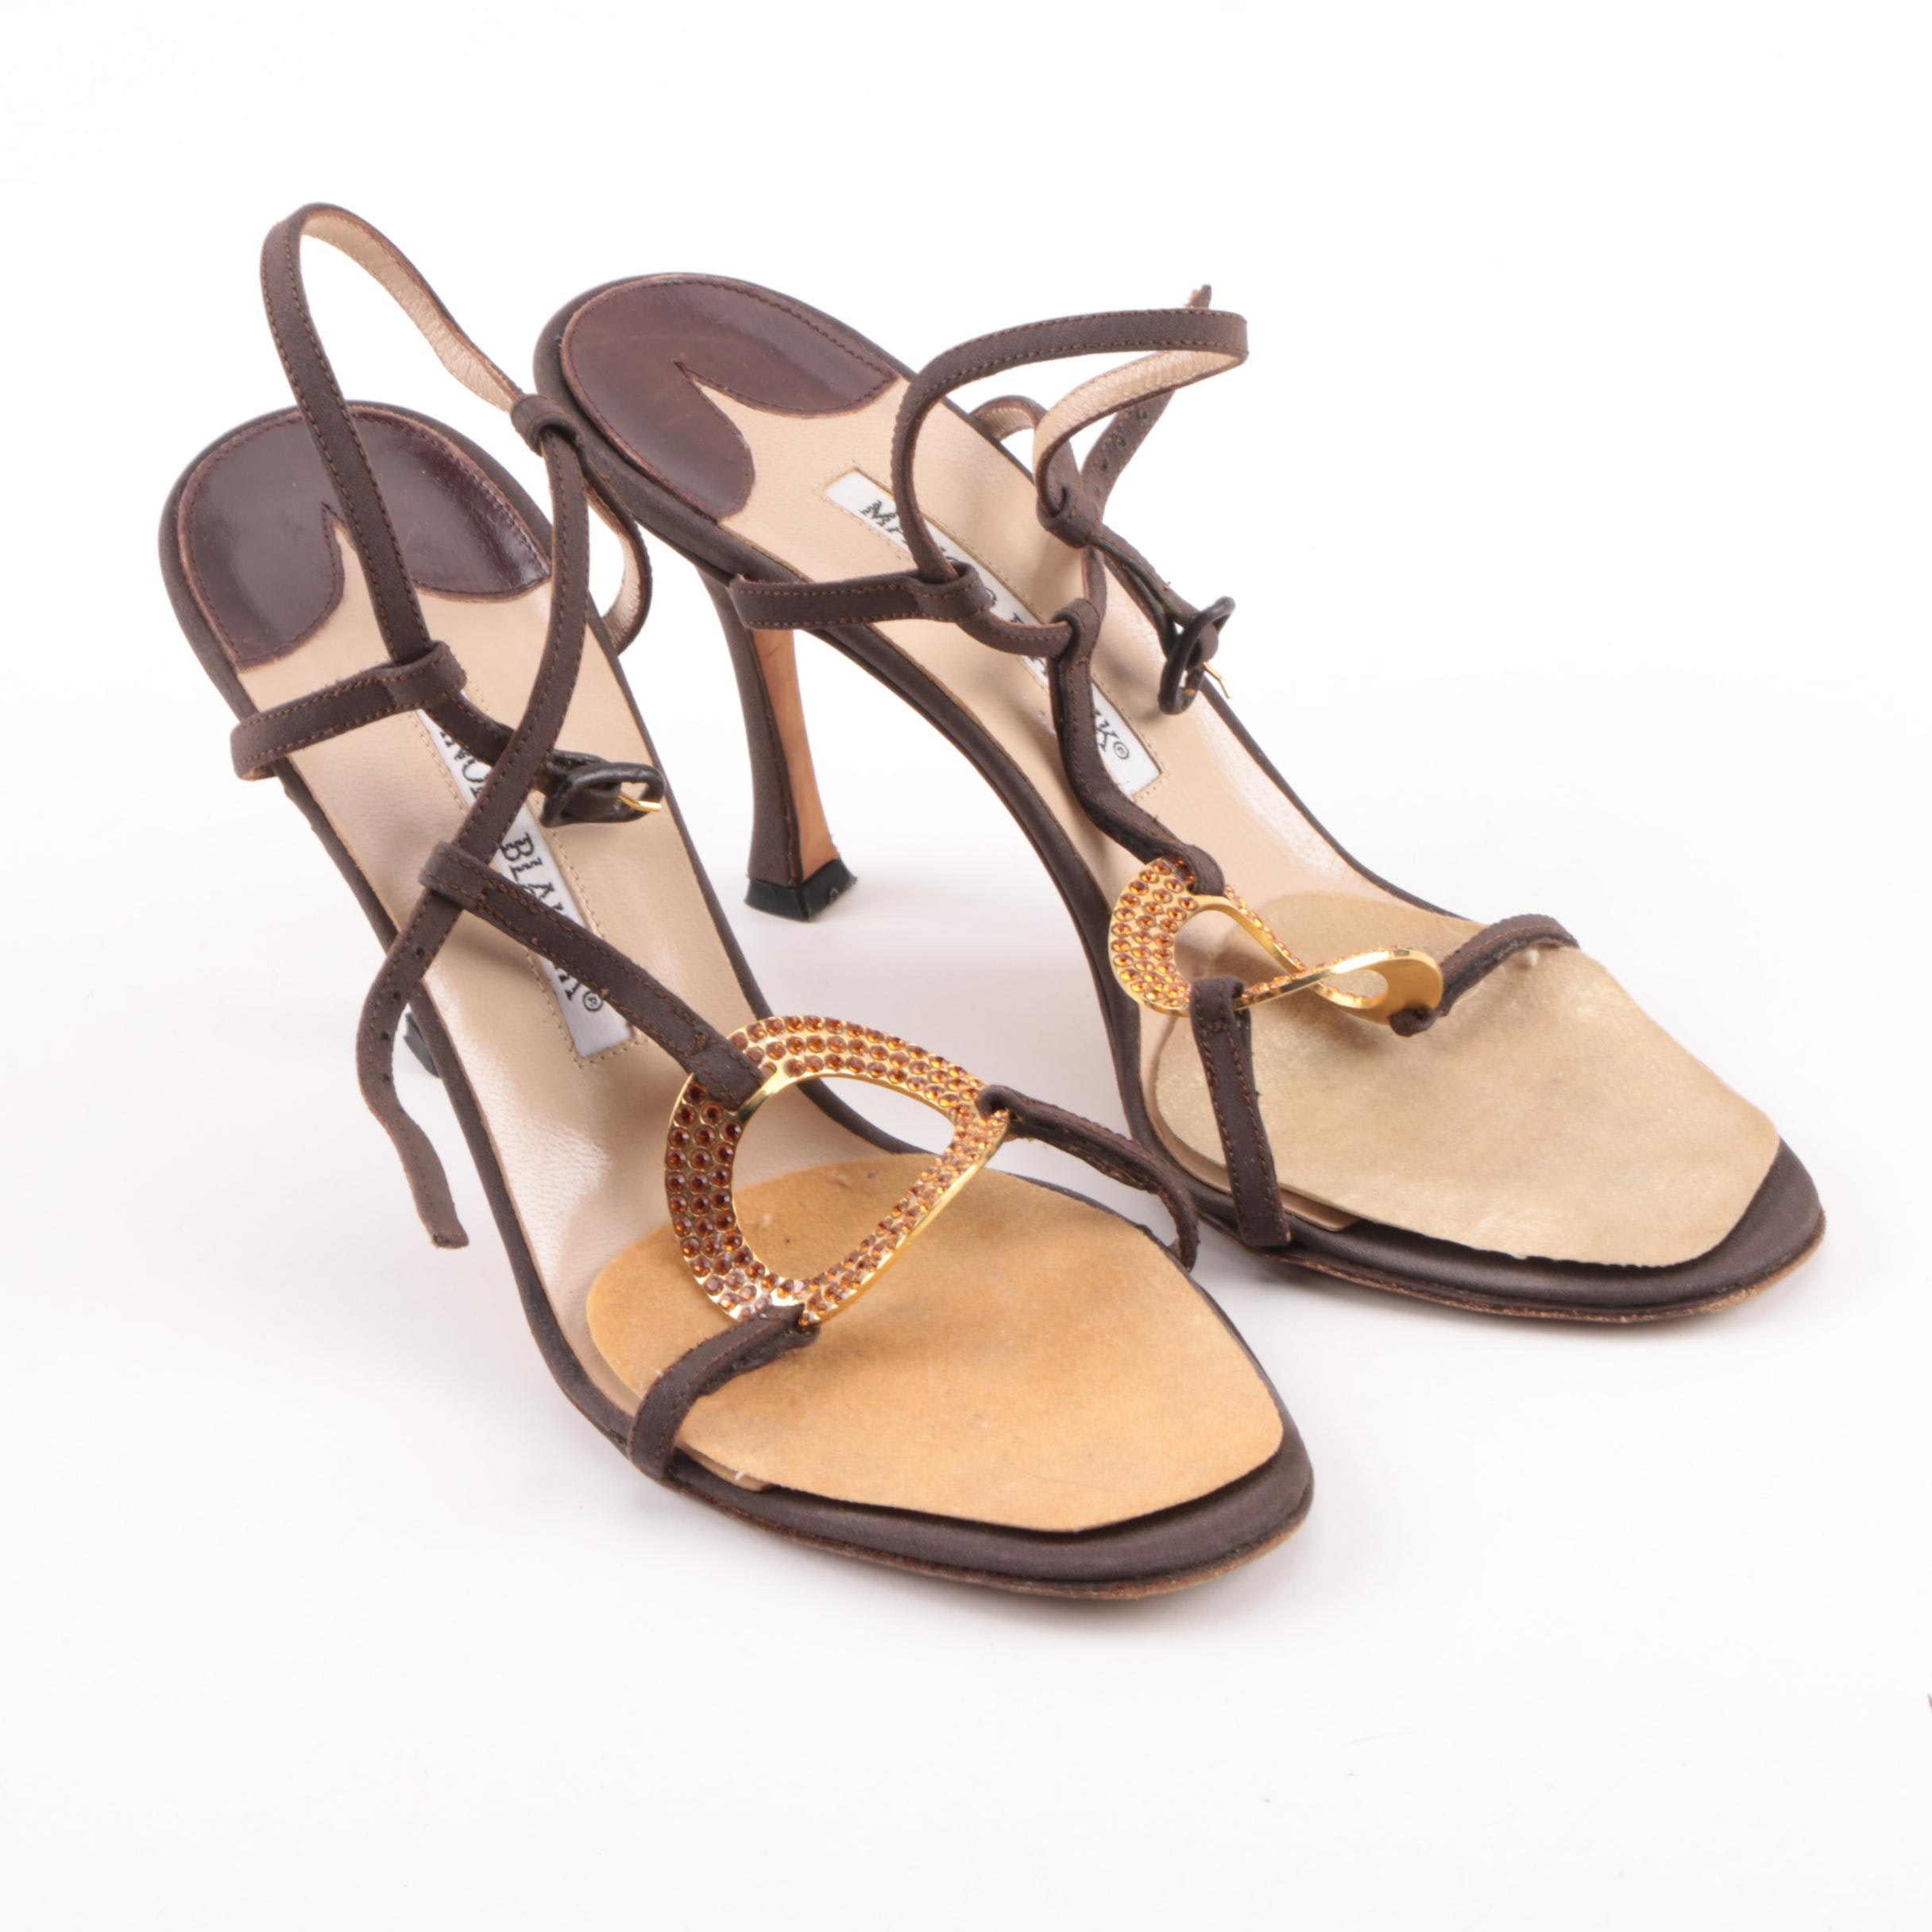 Women's Manolo Blahnik Embellished Brown Fabric Covered Leather Heeled Sandals